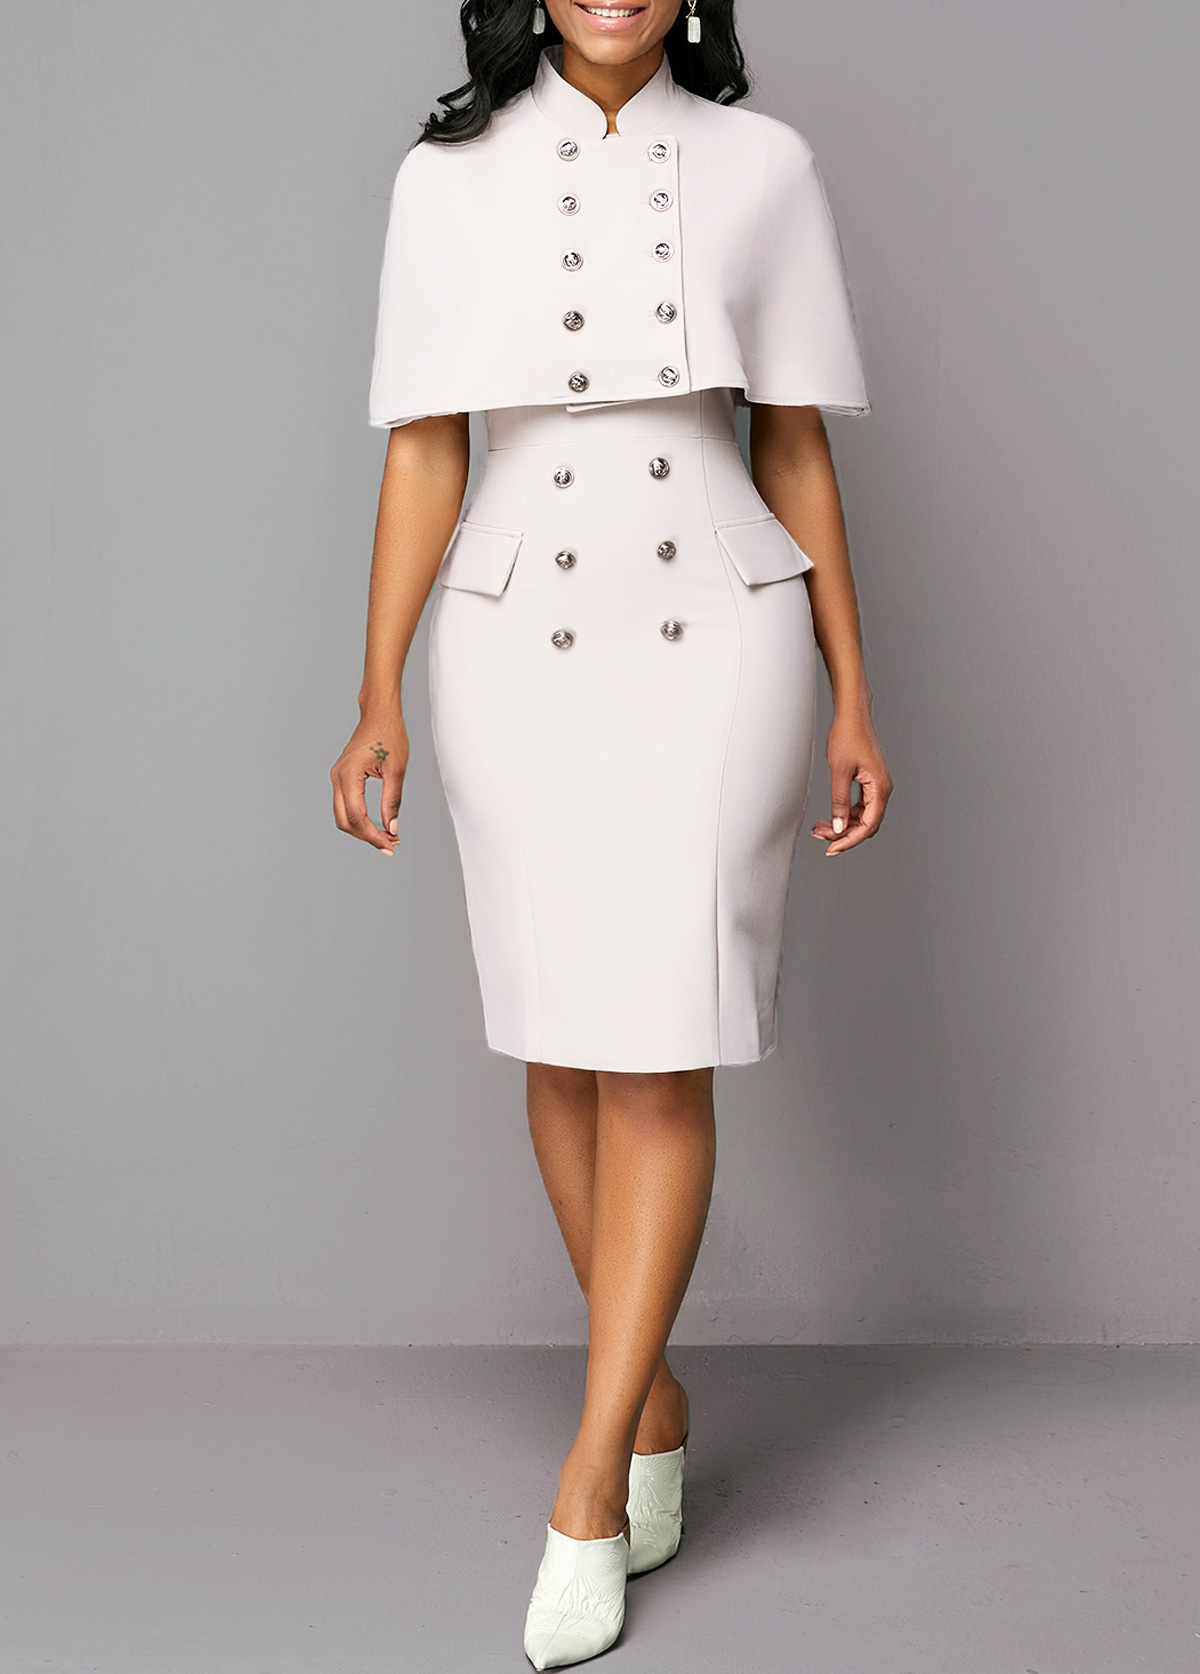 Cape Shoulder Top and Button Detail Sheath Dress